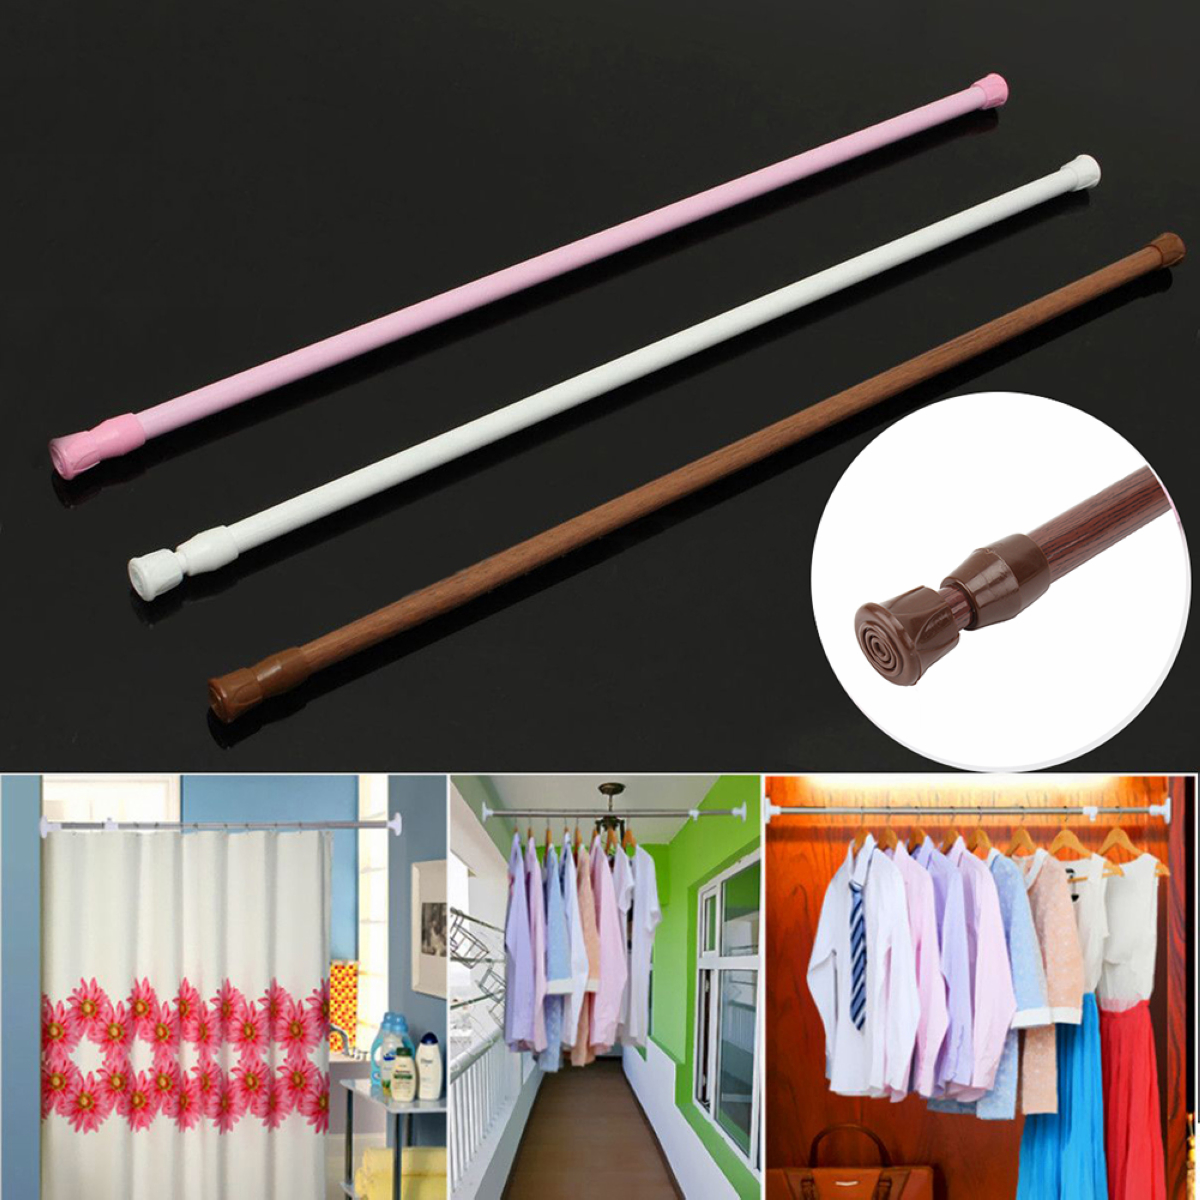 Curtain Shower Rod Promotion Shop For Promotional Curtain Shower Rod On